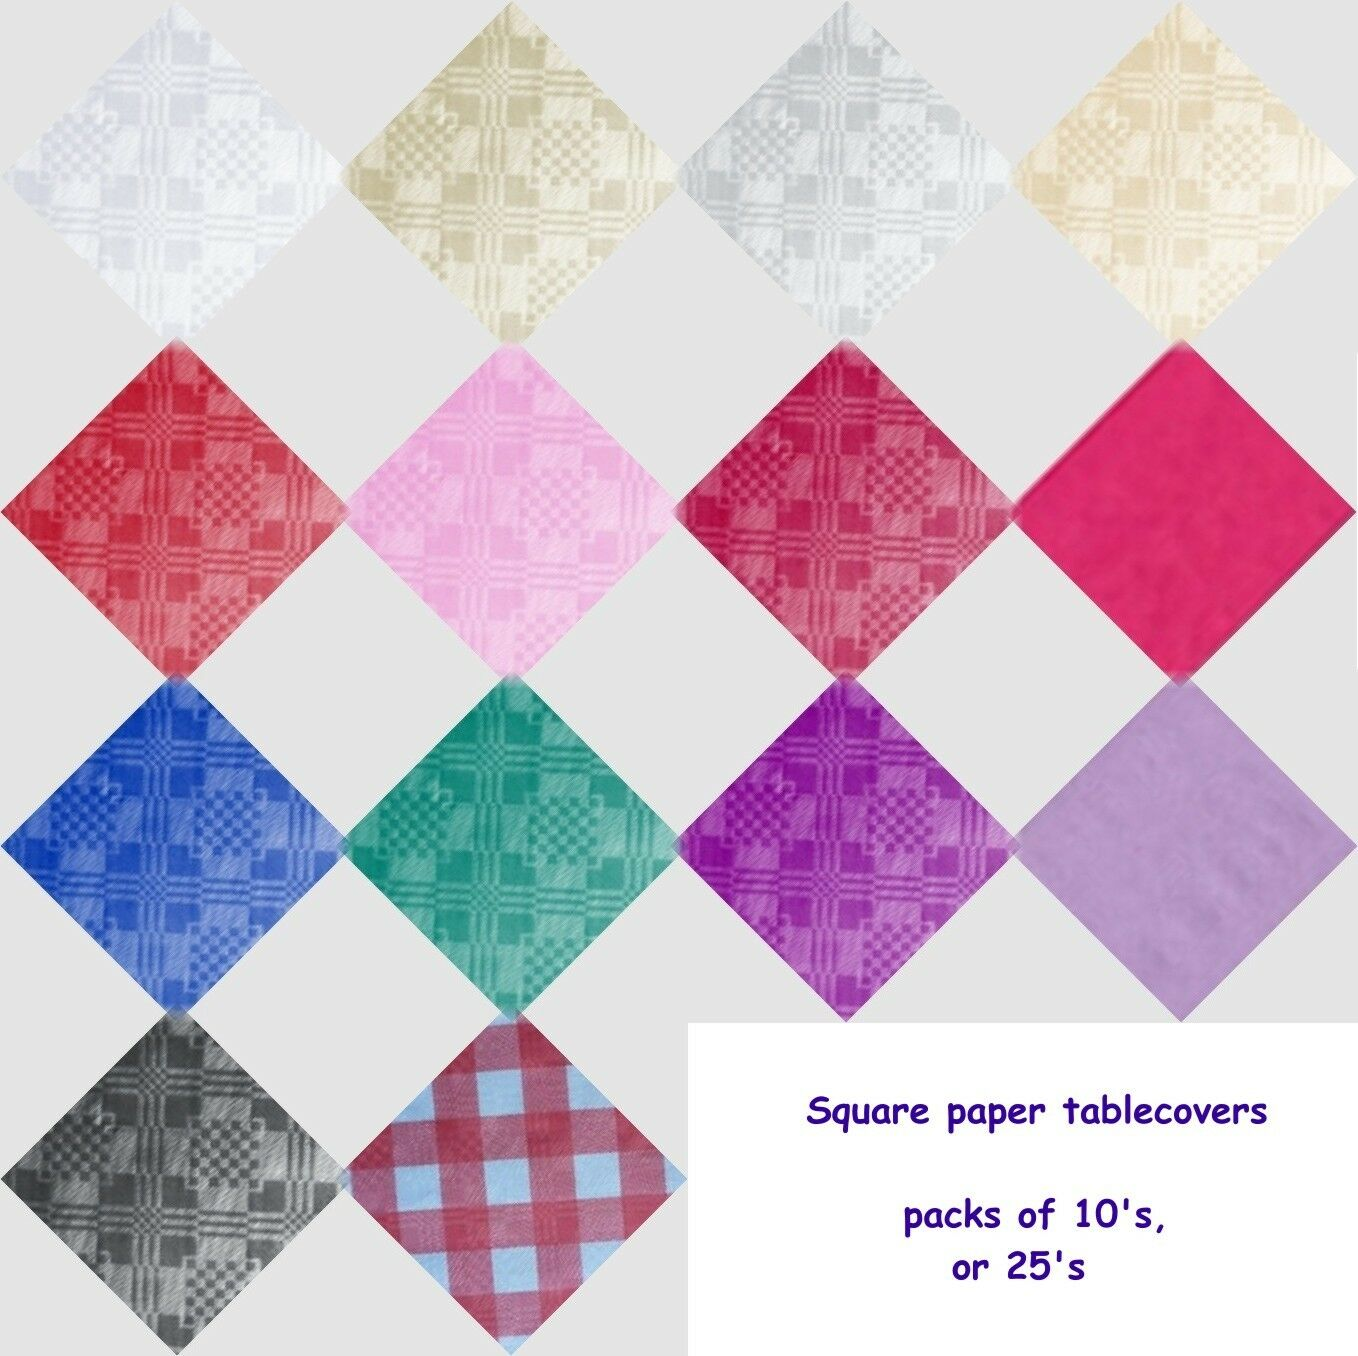 SQUARE PAPER TABLECOVERS , TABLE COVERS , CLOTHS PK 5, 10, 15, 20, 25 OR 50